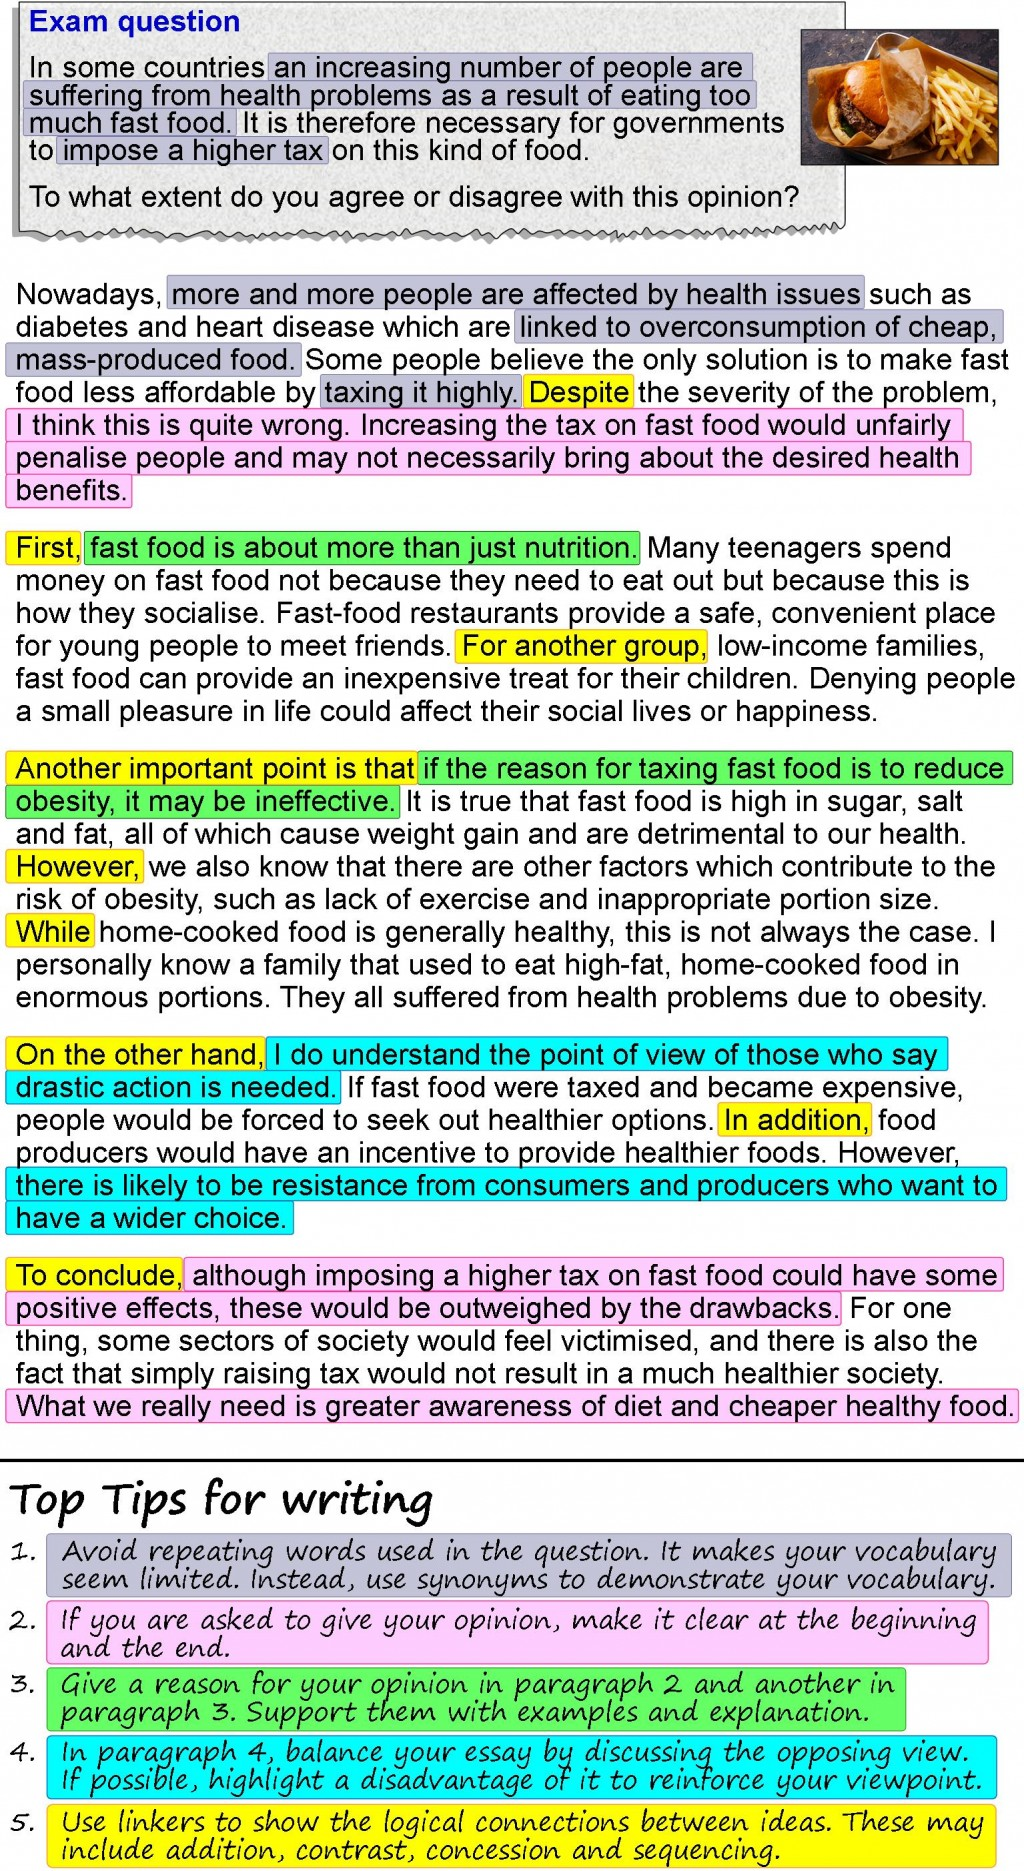 008 An Opinion Essay About Fast Food 4 Example Healthy Impressive Eating In French Pt3 Spm Large